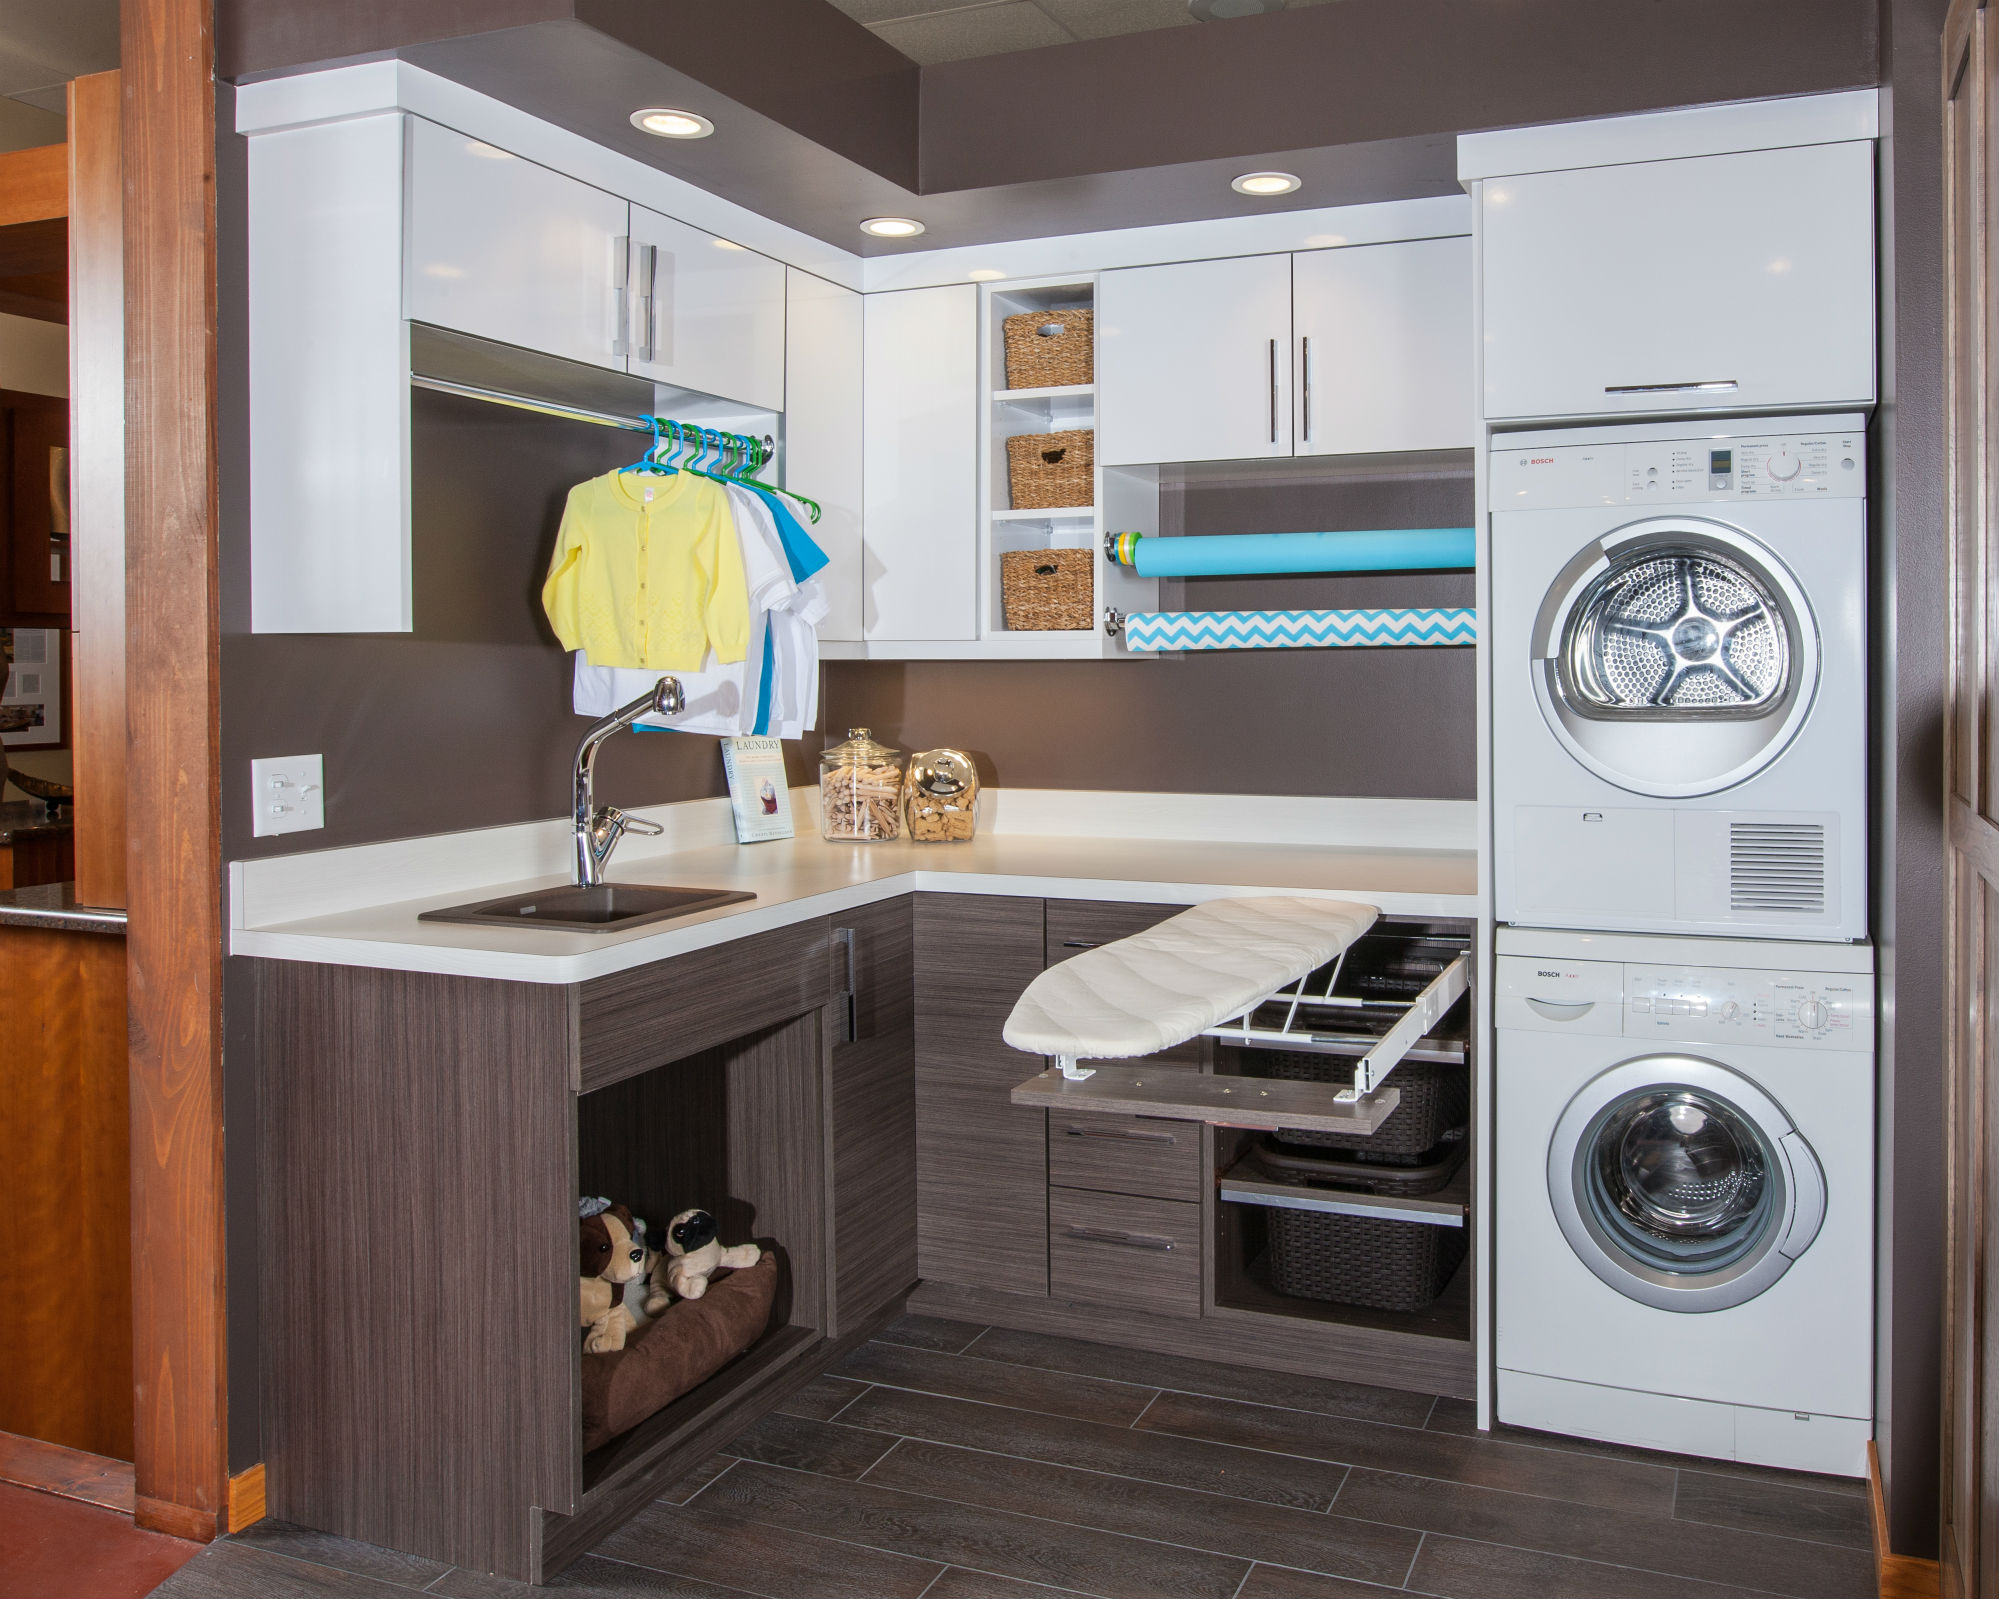 Crystal Kitchen Bath Laundry Rooms Remodeling